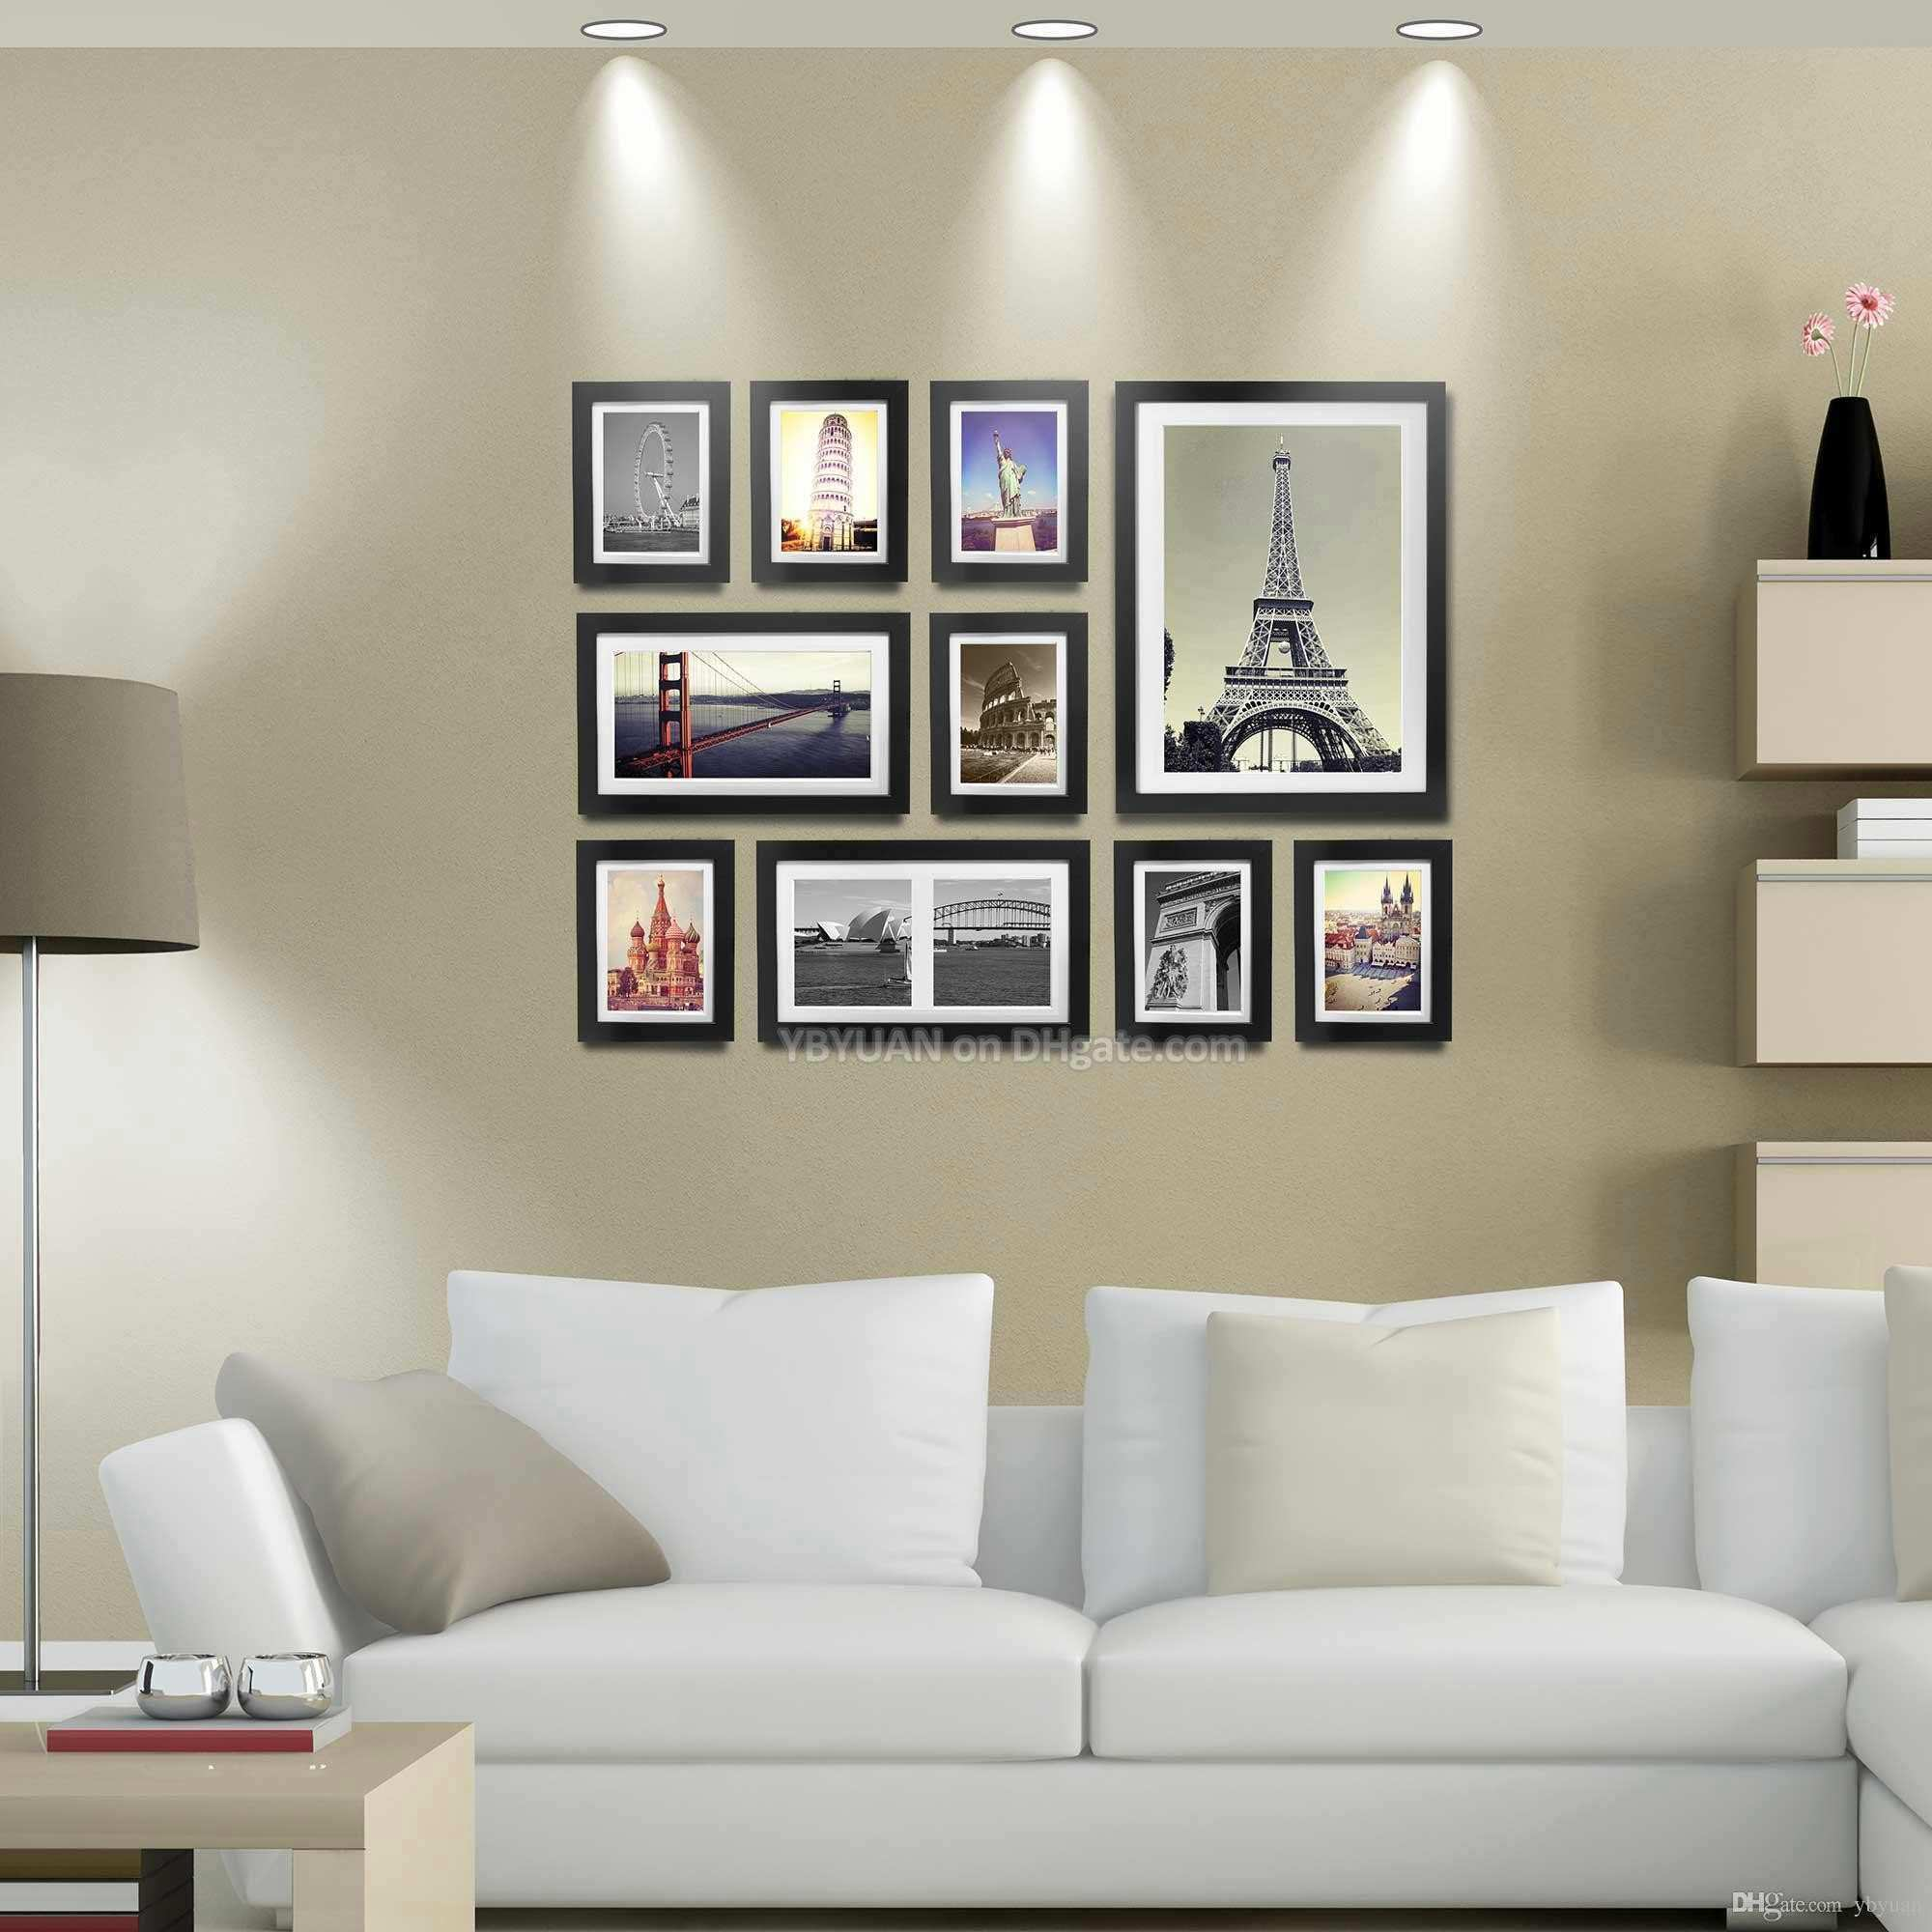 2018 Wood Frame Gallery Wall Modern Style Flat Moulding Border